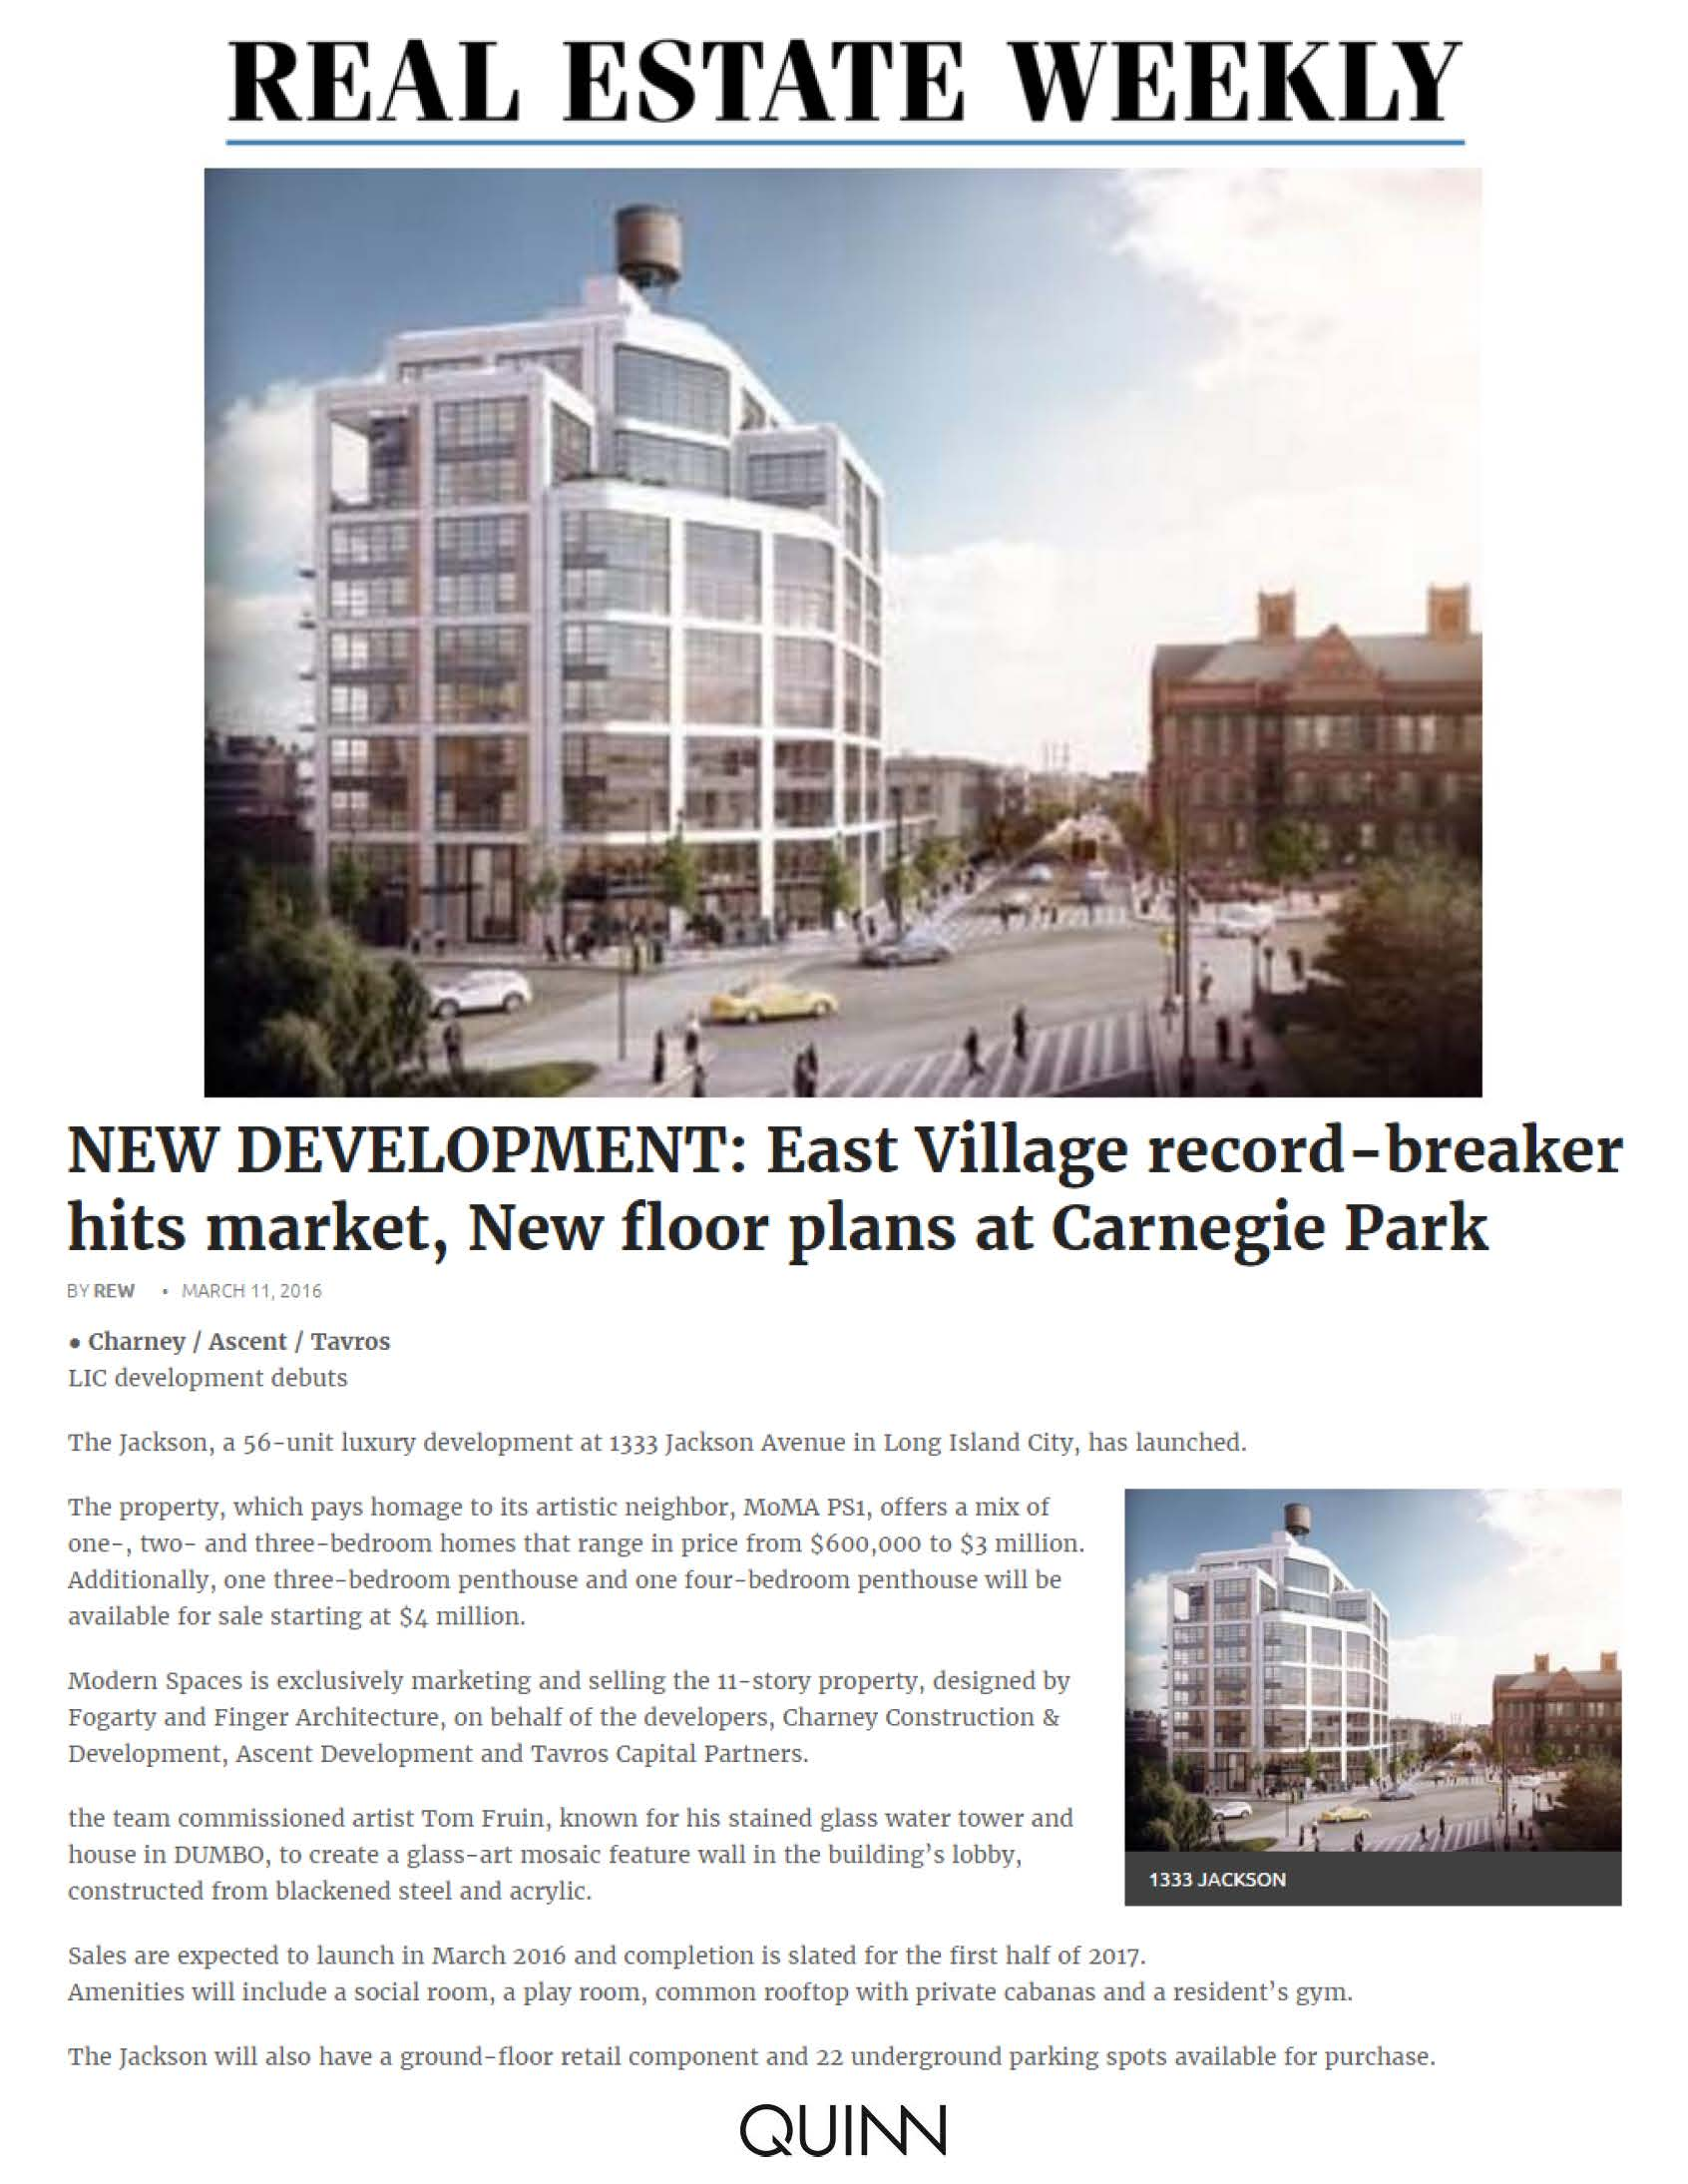 Real Estate Weekly - NEW DEVELOPMENT East Village record-breaker hits market, New floor plans at Carnegie Park - 03.11.16